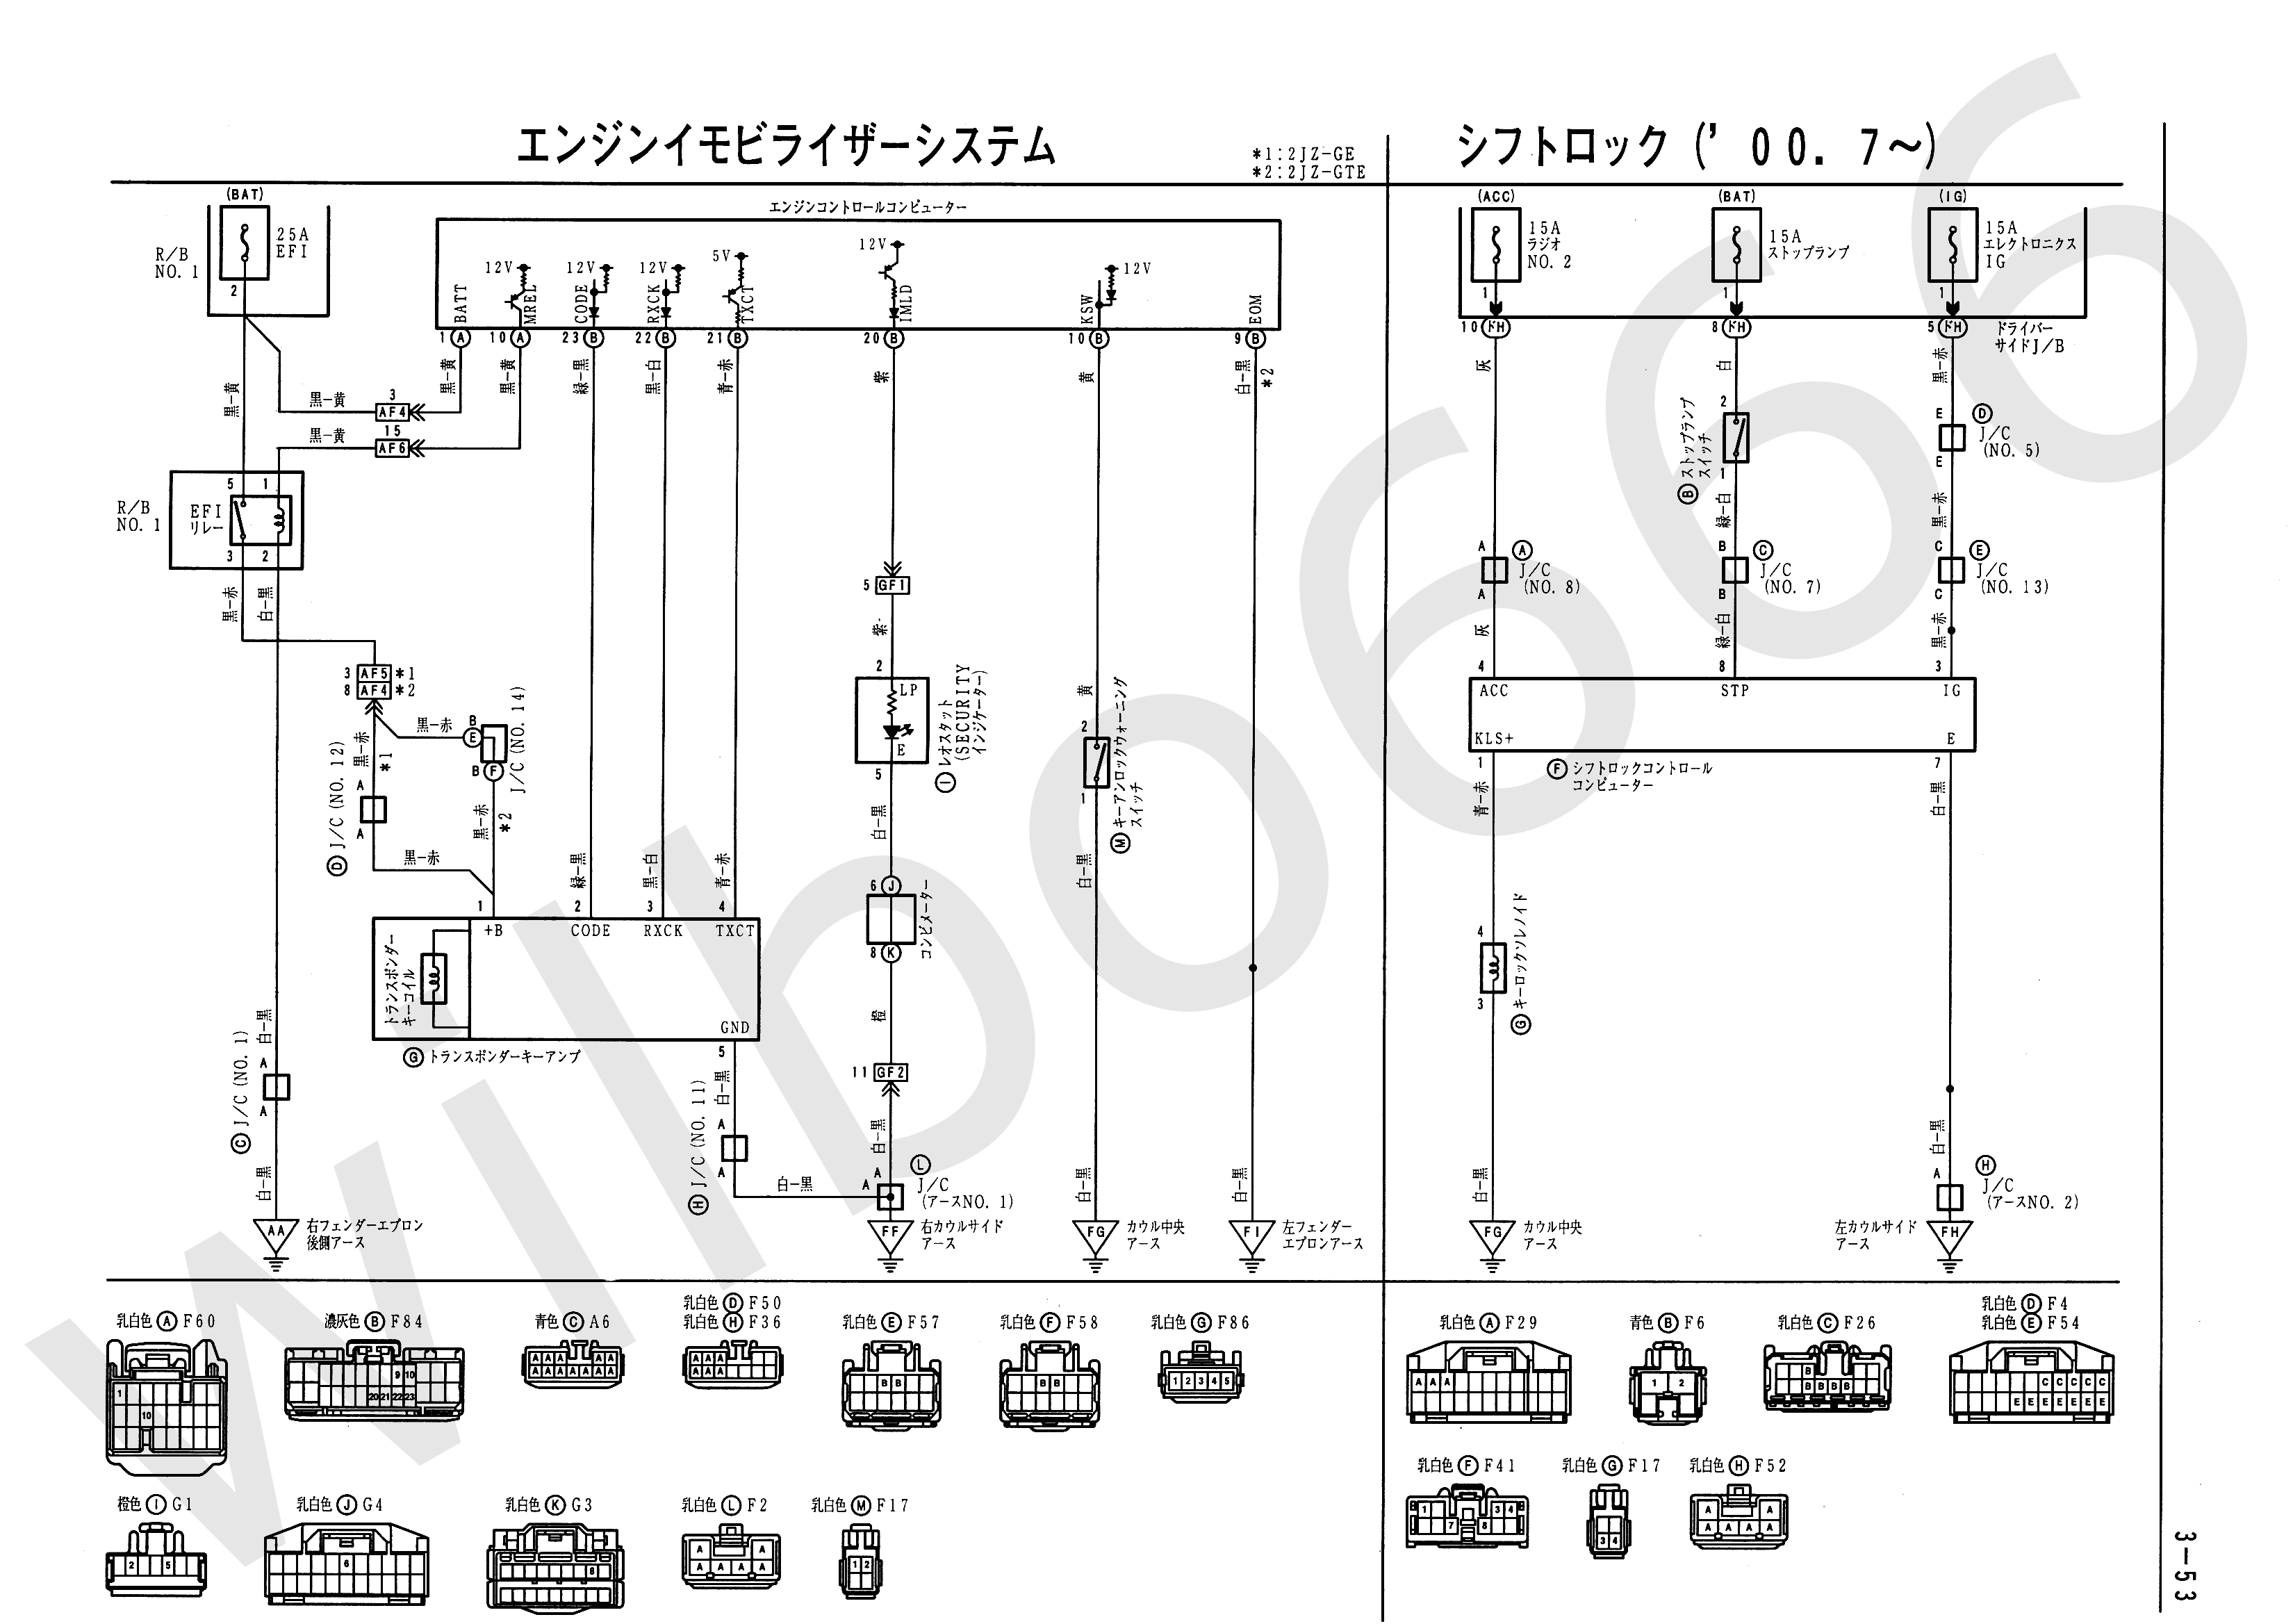 JZS161 Electrical Wiring Diagram 6748505 3 53 apexi vafc wiring diagram apexi vafc wiring diagram at mr168.co